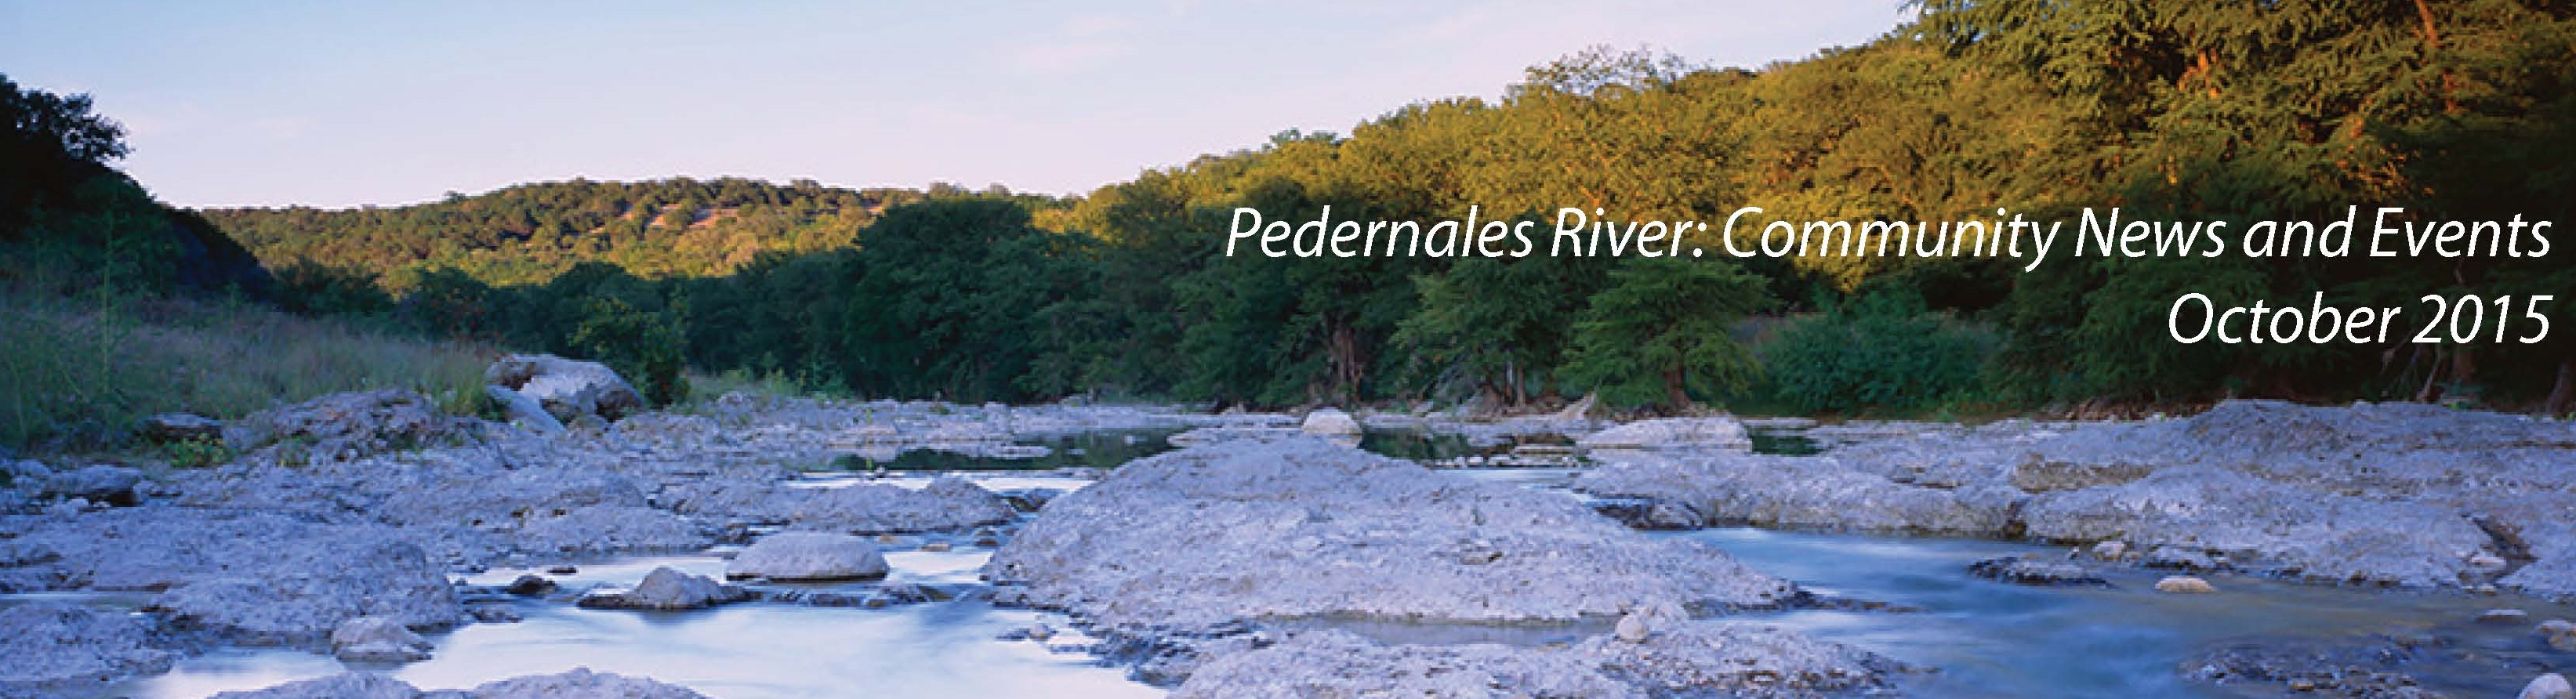 Pages from October 2015_Pedernales Newsletter - Copy